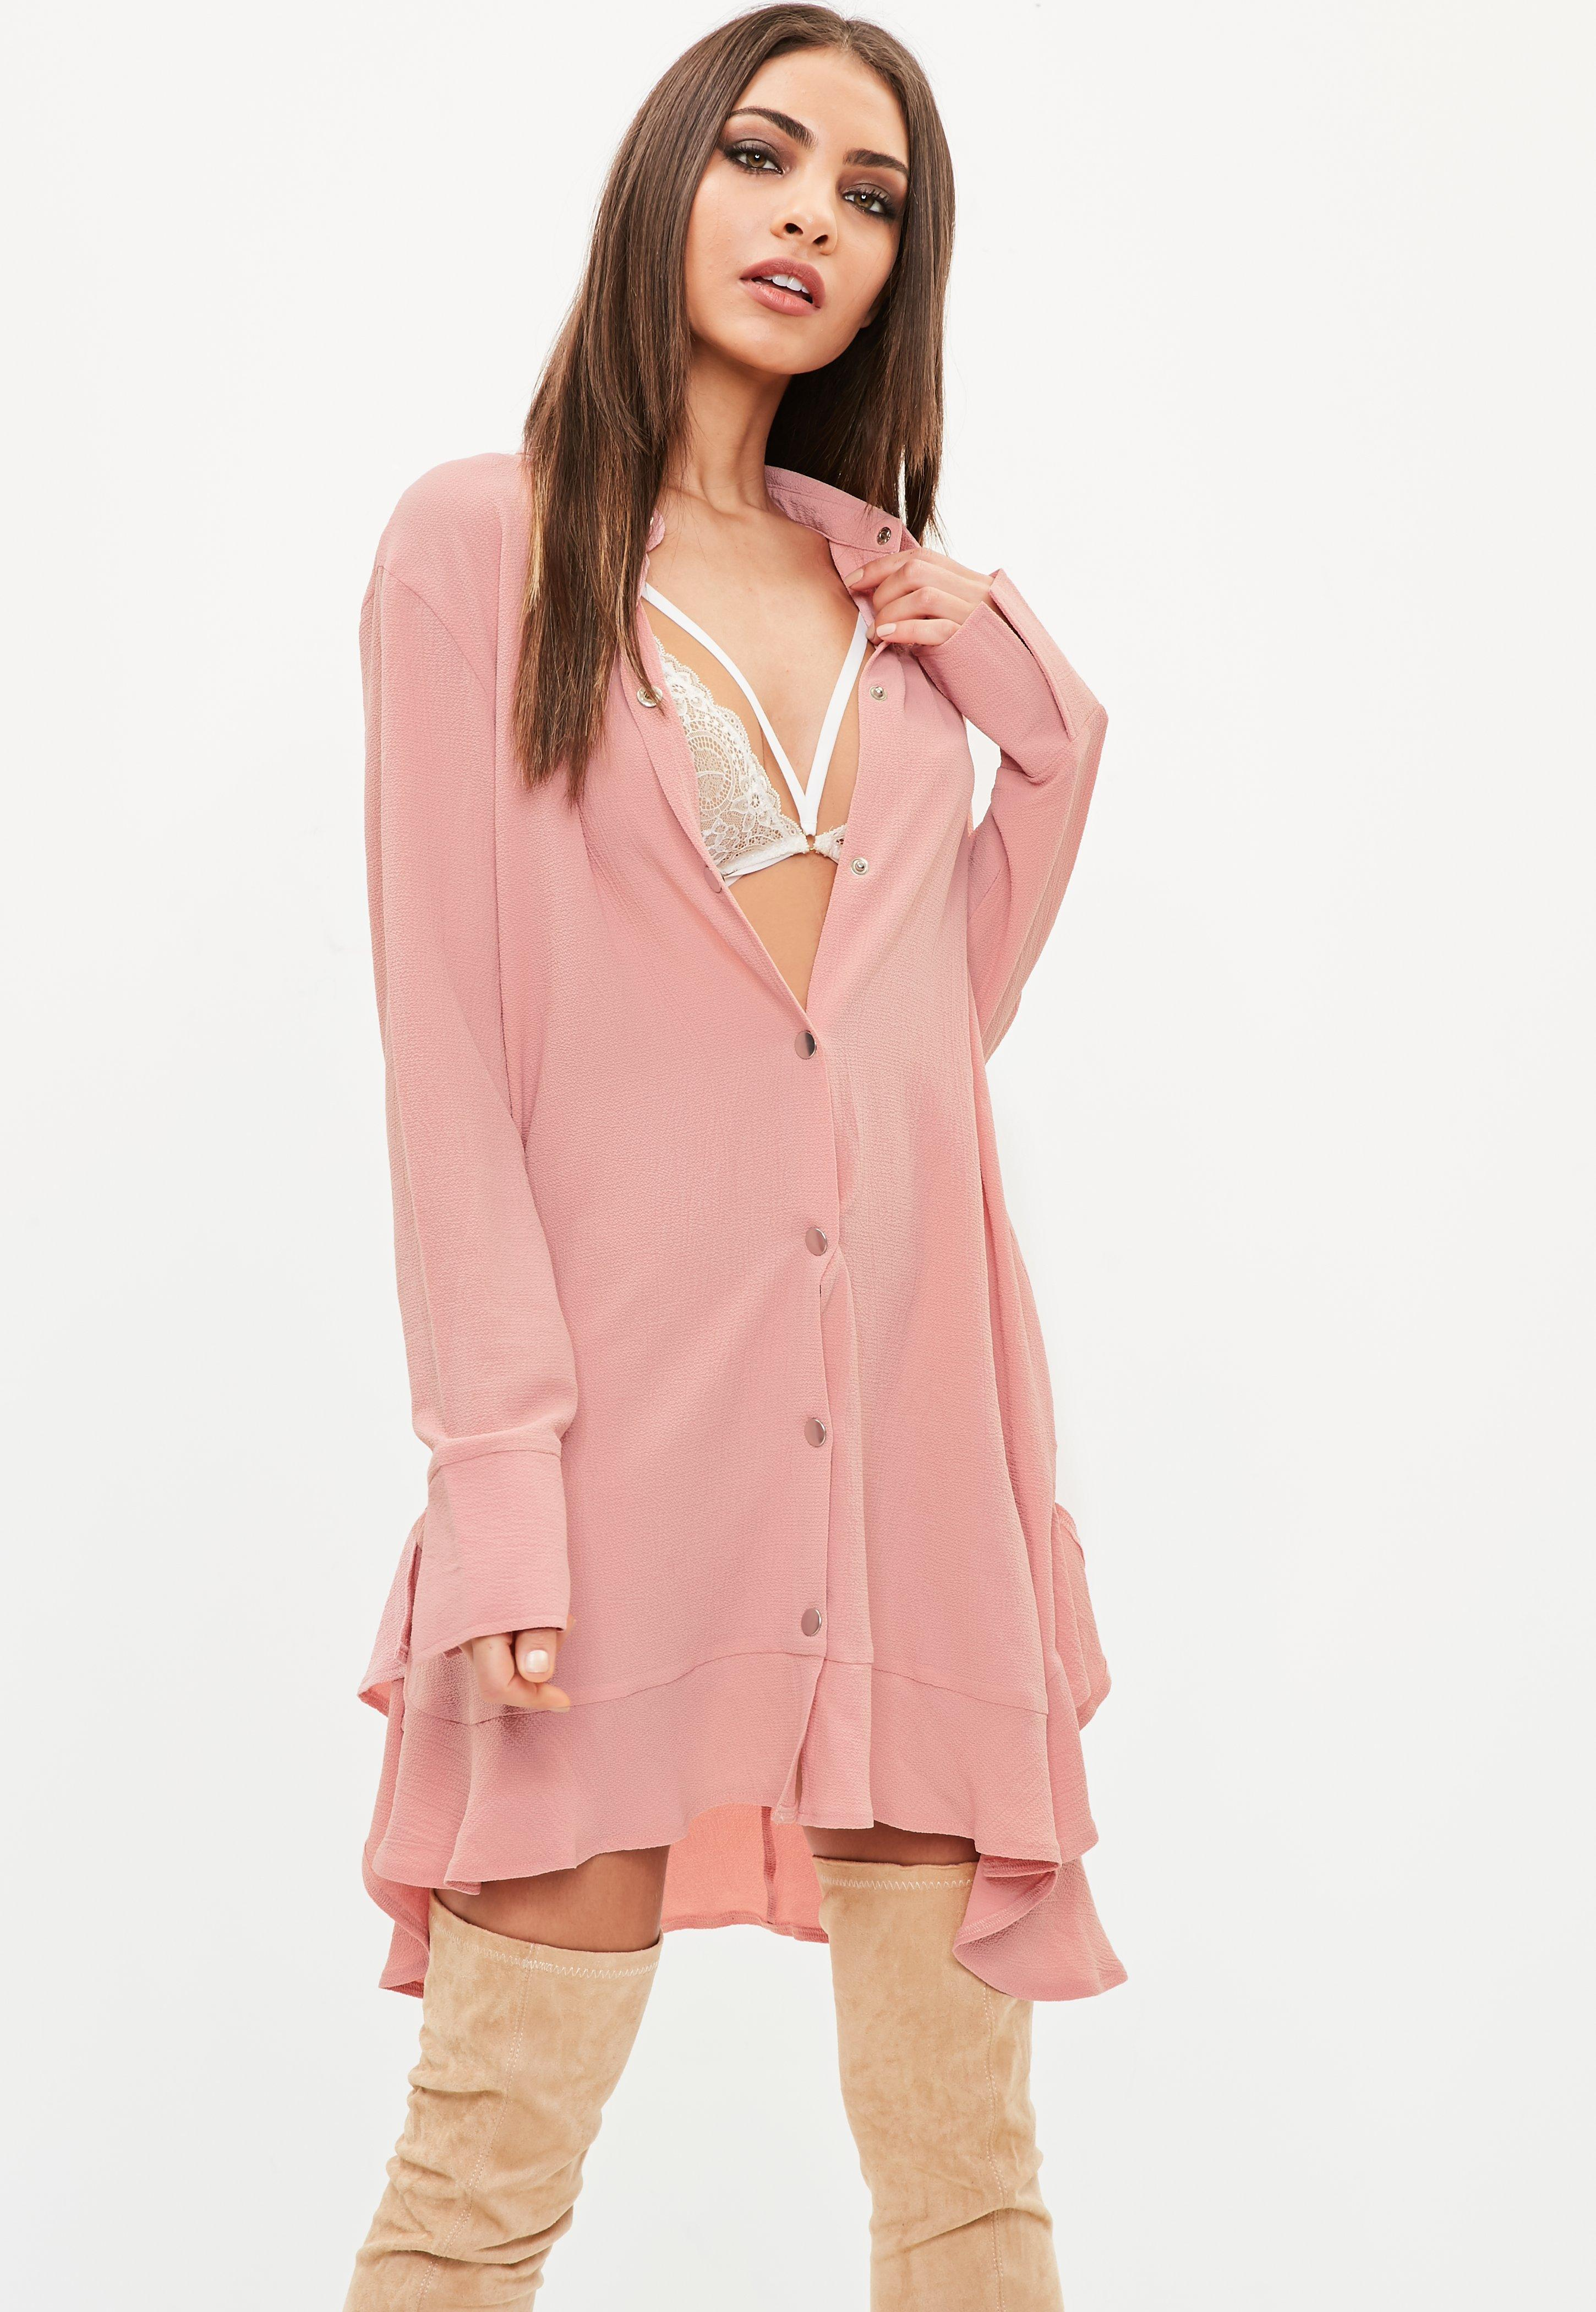 fb3e11c239ef Lyst - Missguided Pink Long Sleeve Frill Hem Shirt Dress in Pink